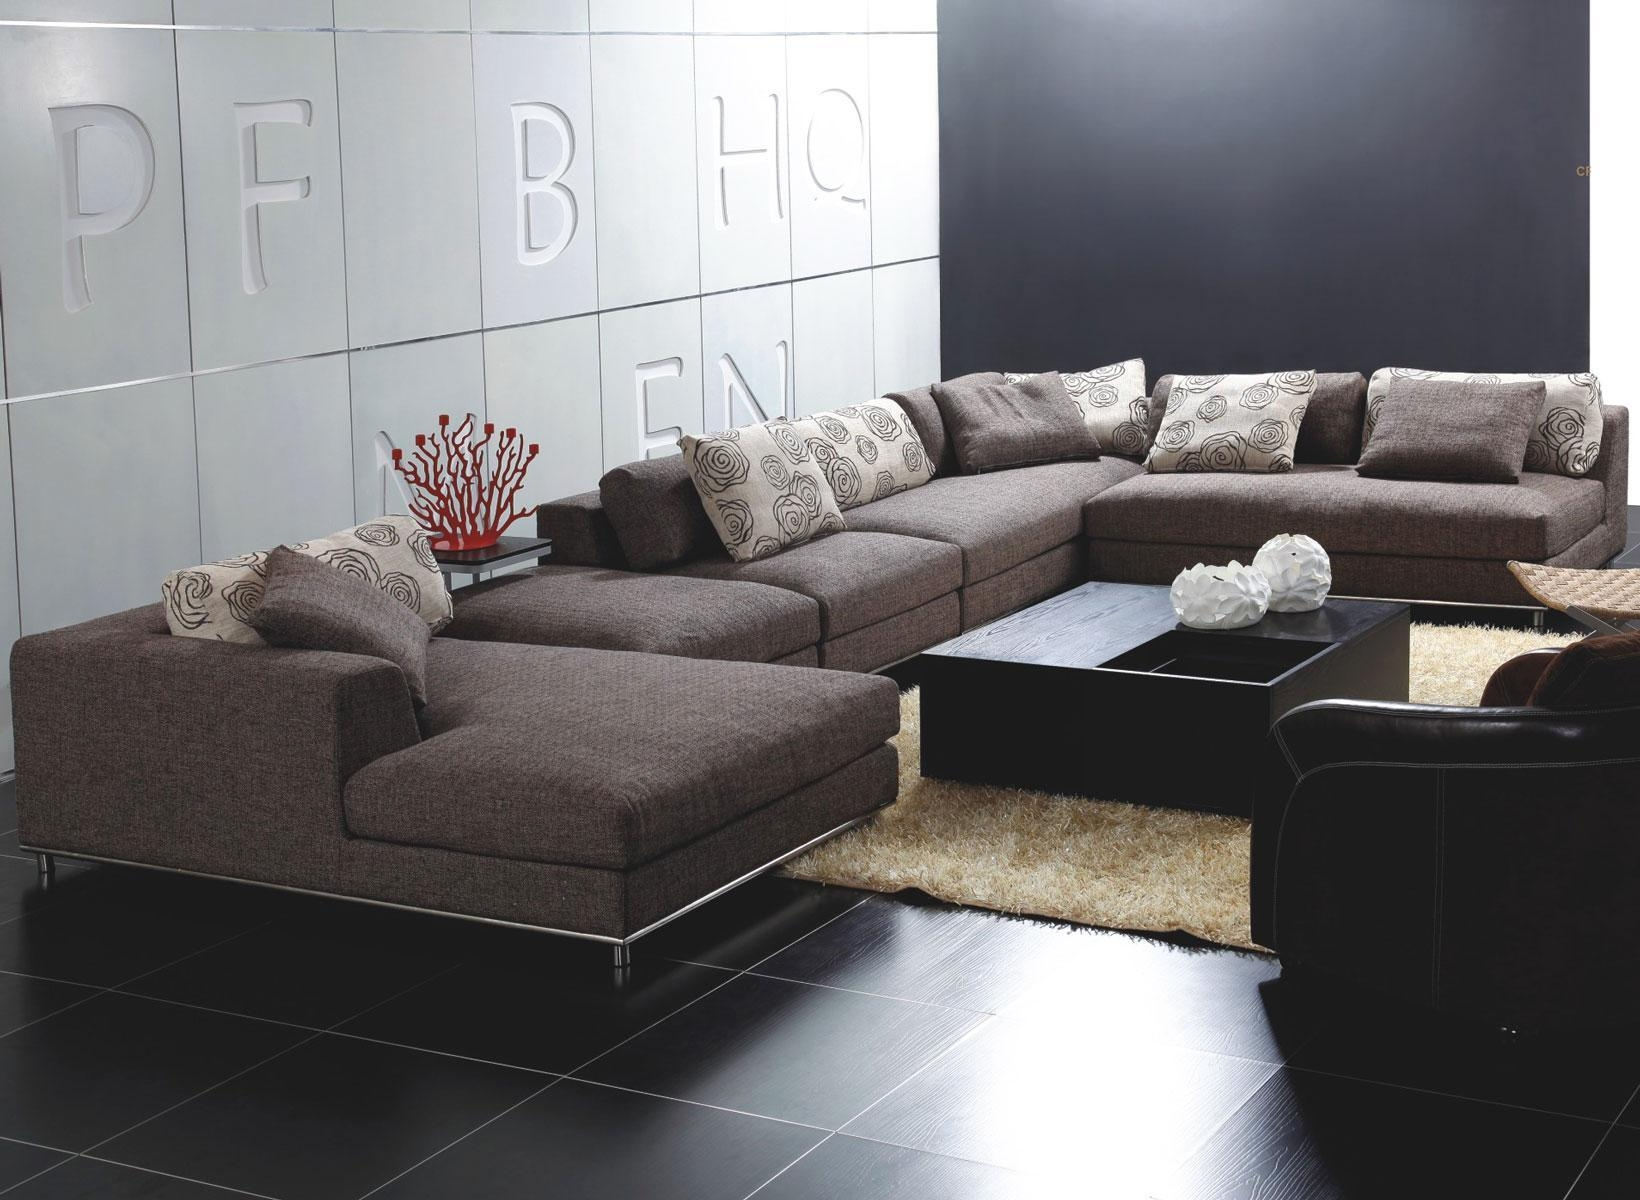 Sofas : Awesome Modern Sectional Couches L Shaped Couch Modern In Modern Sofas Sectionals (View 5 of 21)